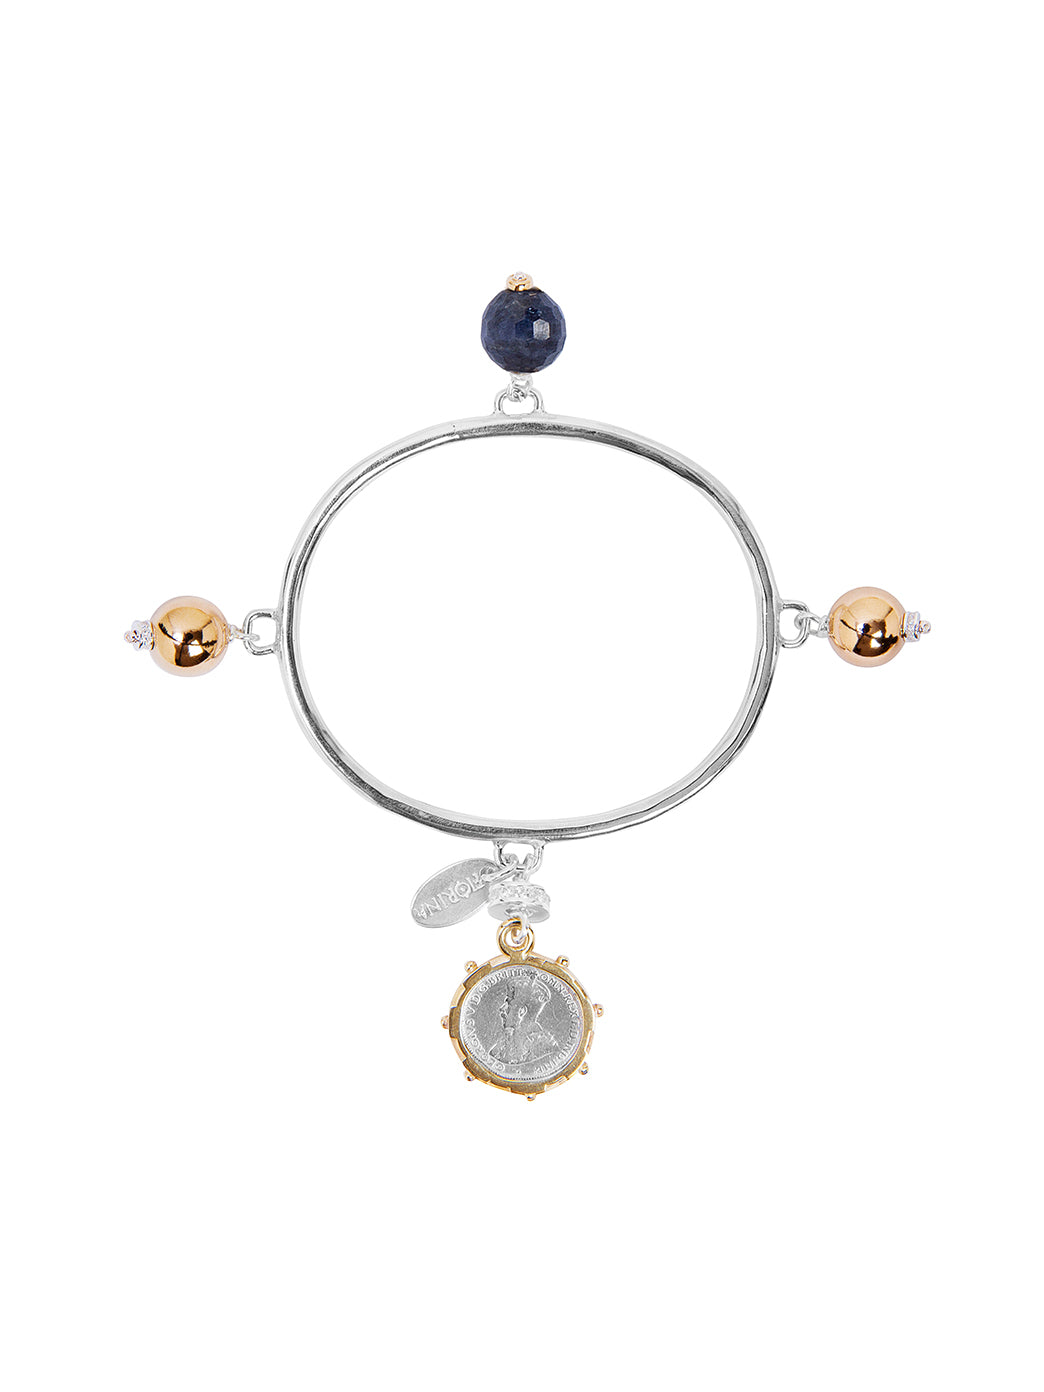 Fiorina Jewellery Vivaldi Bangle Sodalite